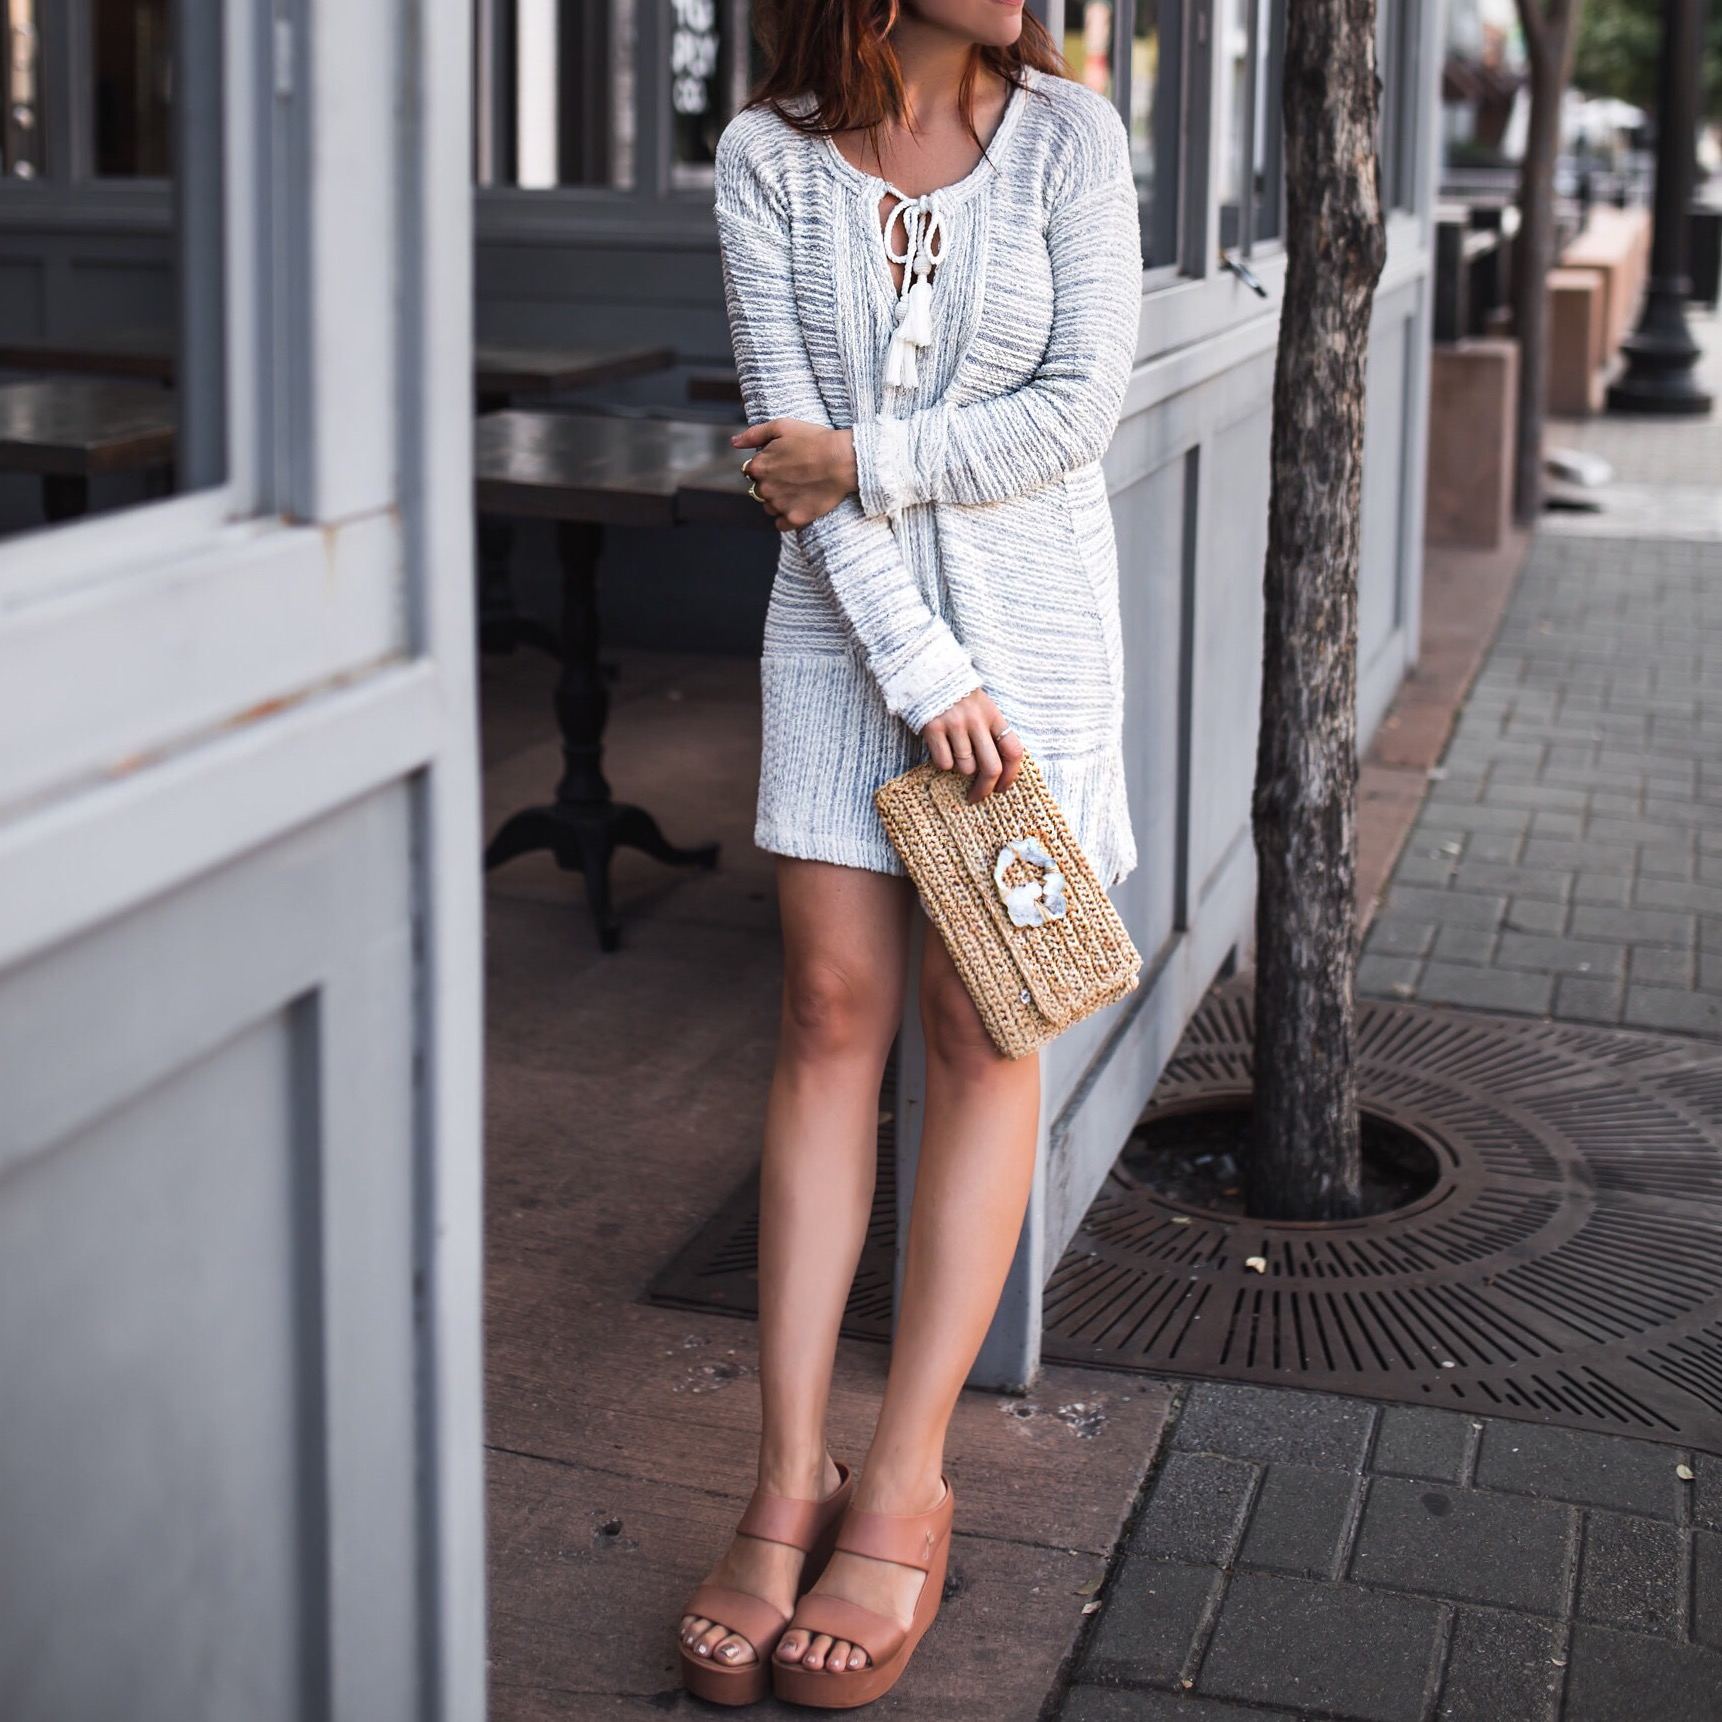 fashionveggie calypso tunic and clutch and melissa wedges